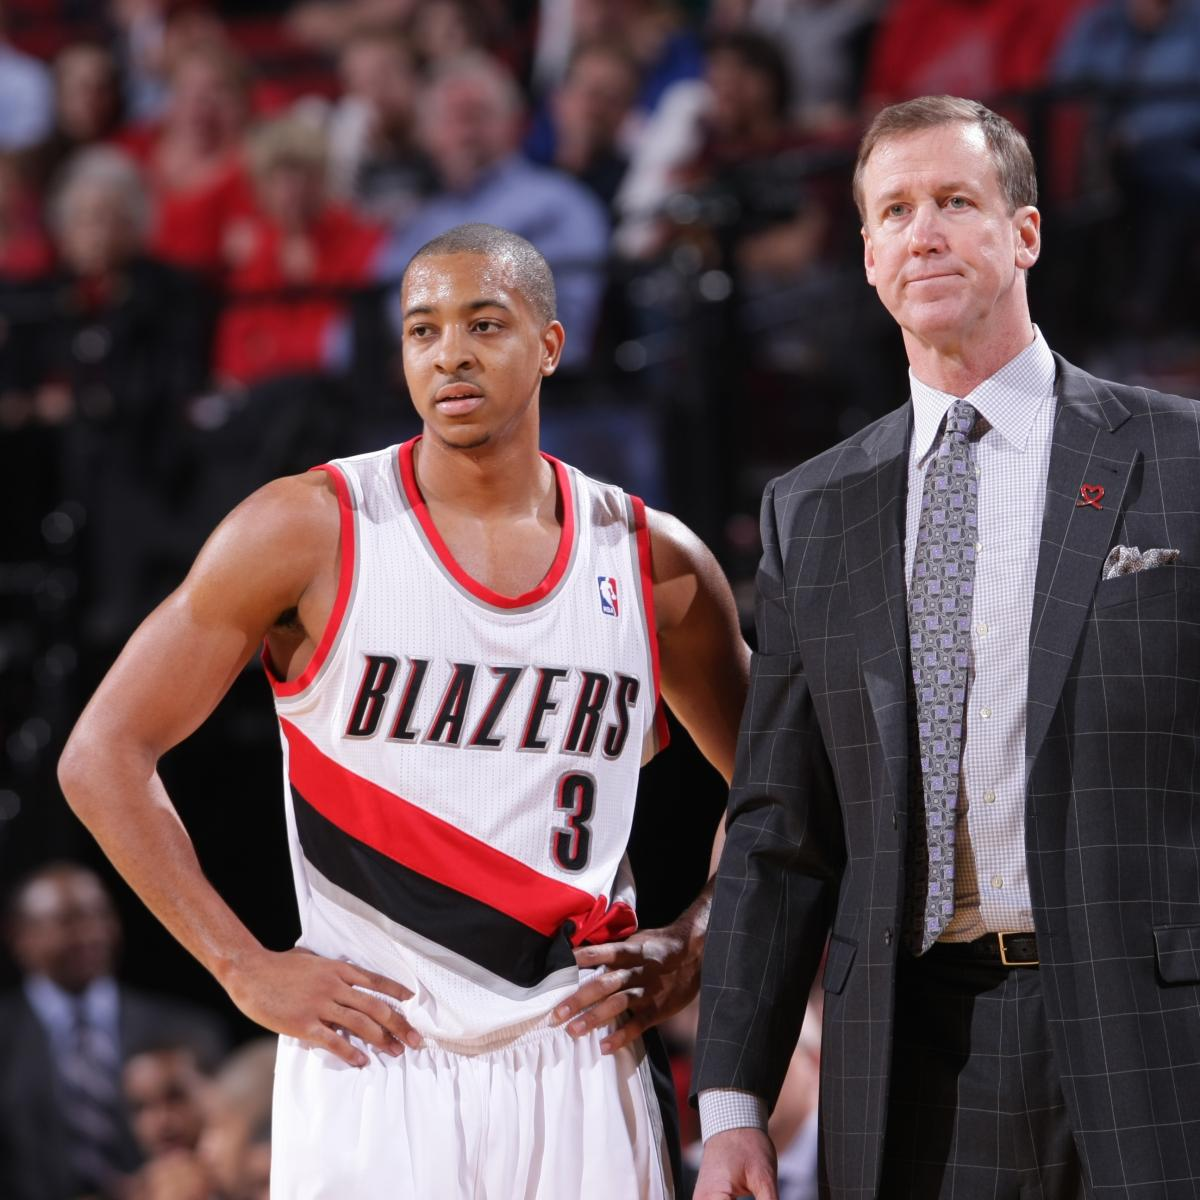 Blazers Injury Report: Why The Portland Trail Blazers Can Overcome C.J. McCollum